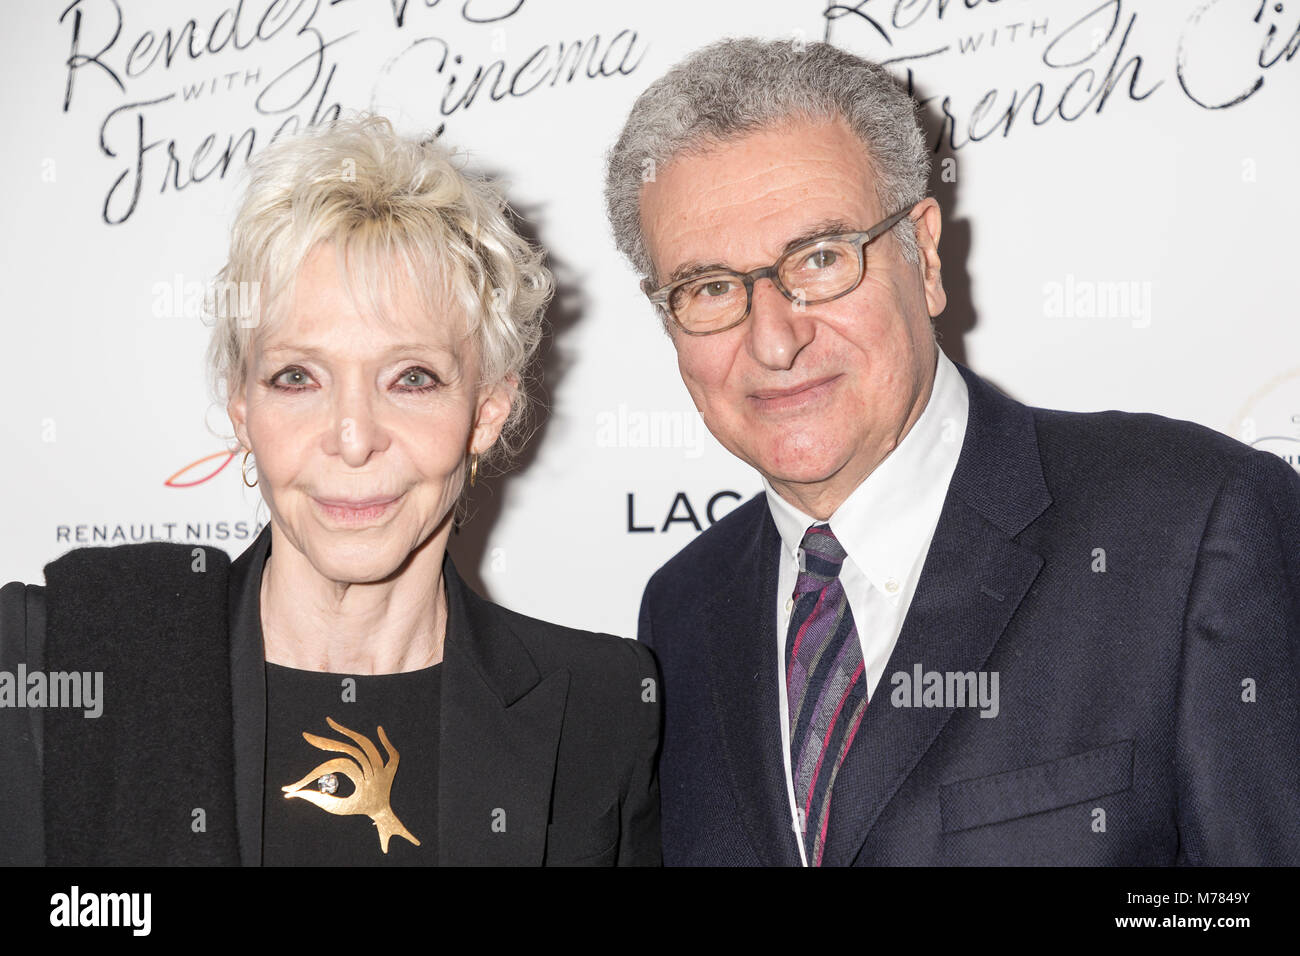 New York, NY, USA - March 8, 2018: Tonie Marshall, Serge Toubiana attend Renez-Vous with French Cinema Opening Night - Stock Image